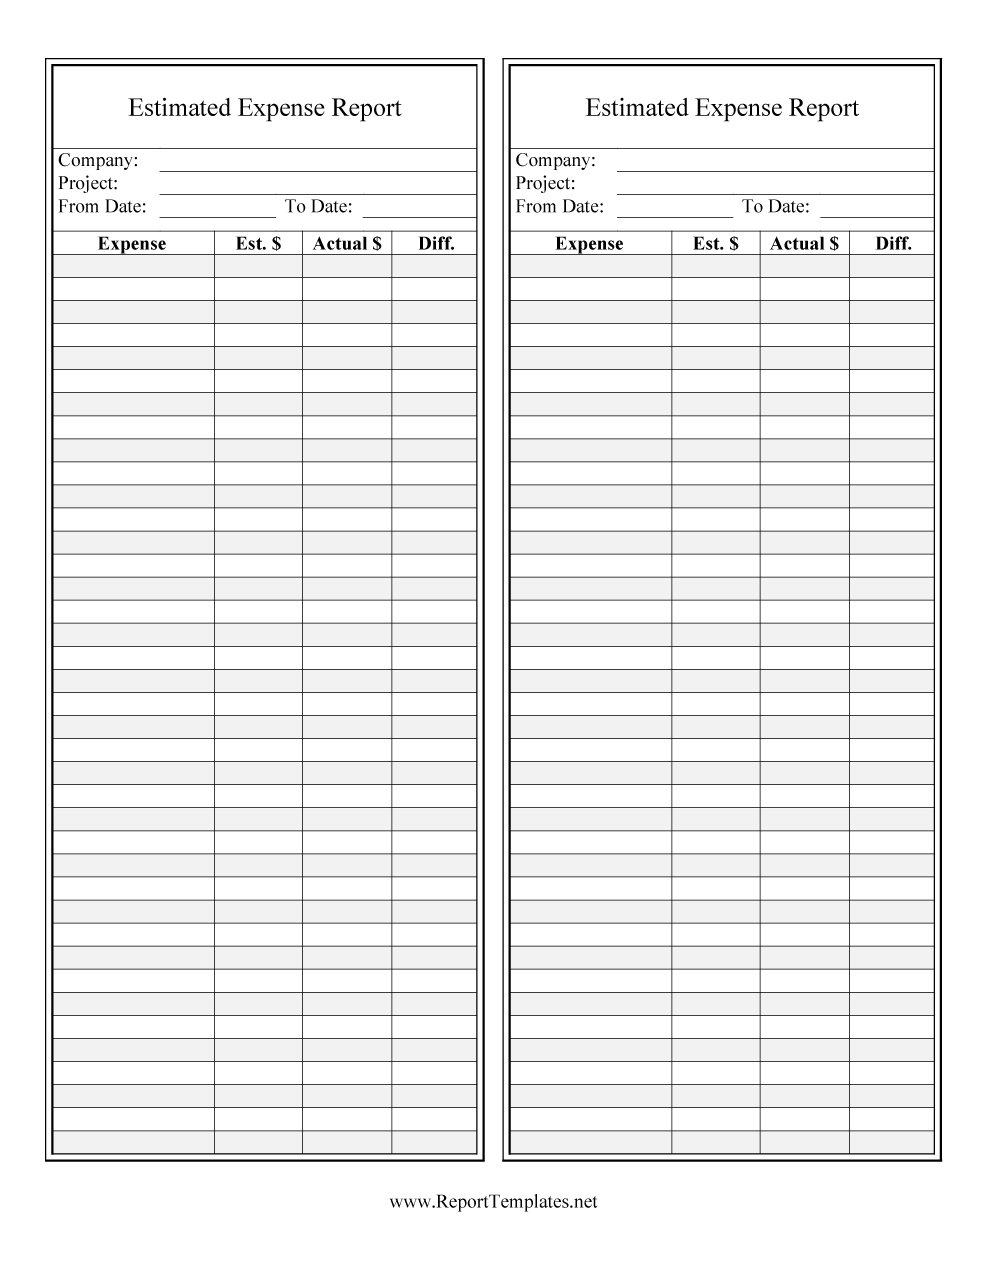 40  Expense Report Templates To Help You Save Money   Template Lab And Office Expense Report Office Expense Report Expense Spreadshee Expense Spreadshee free open office expense report template